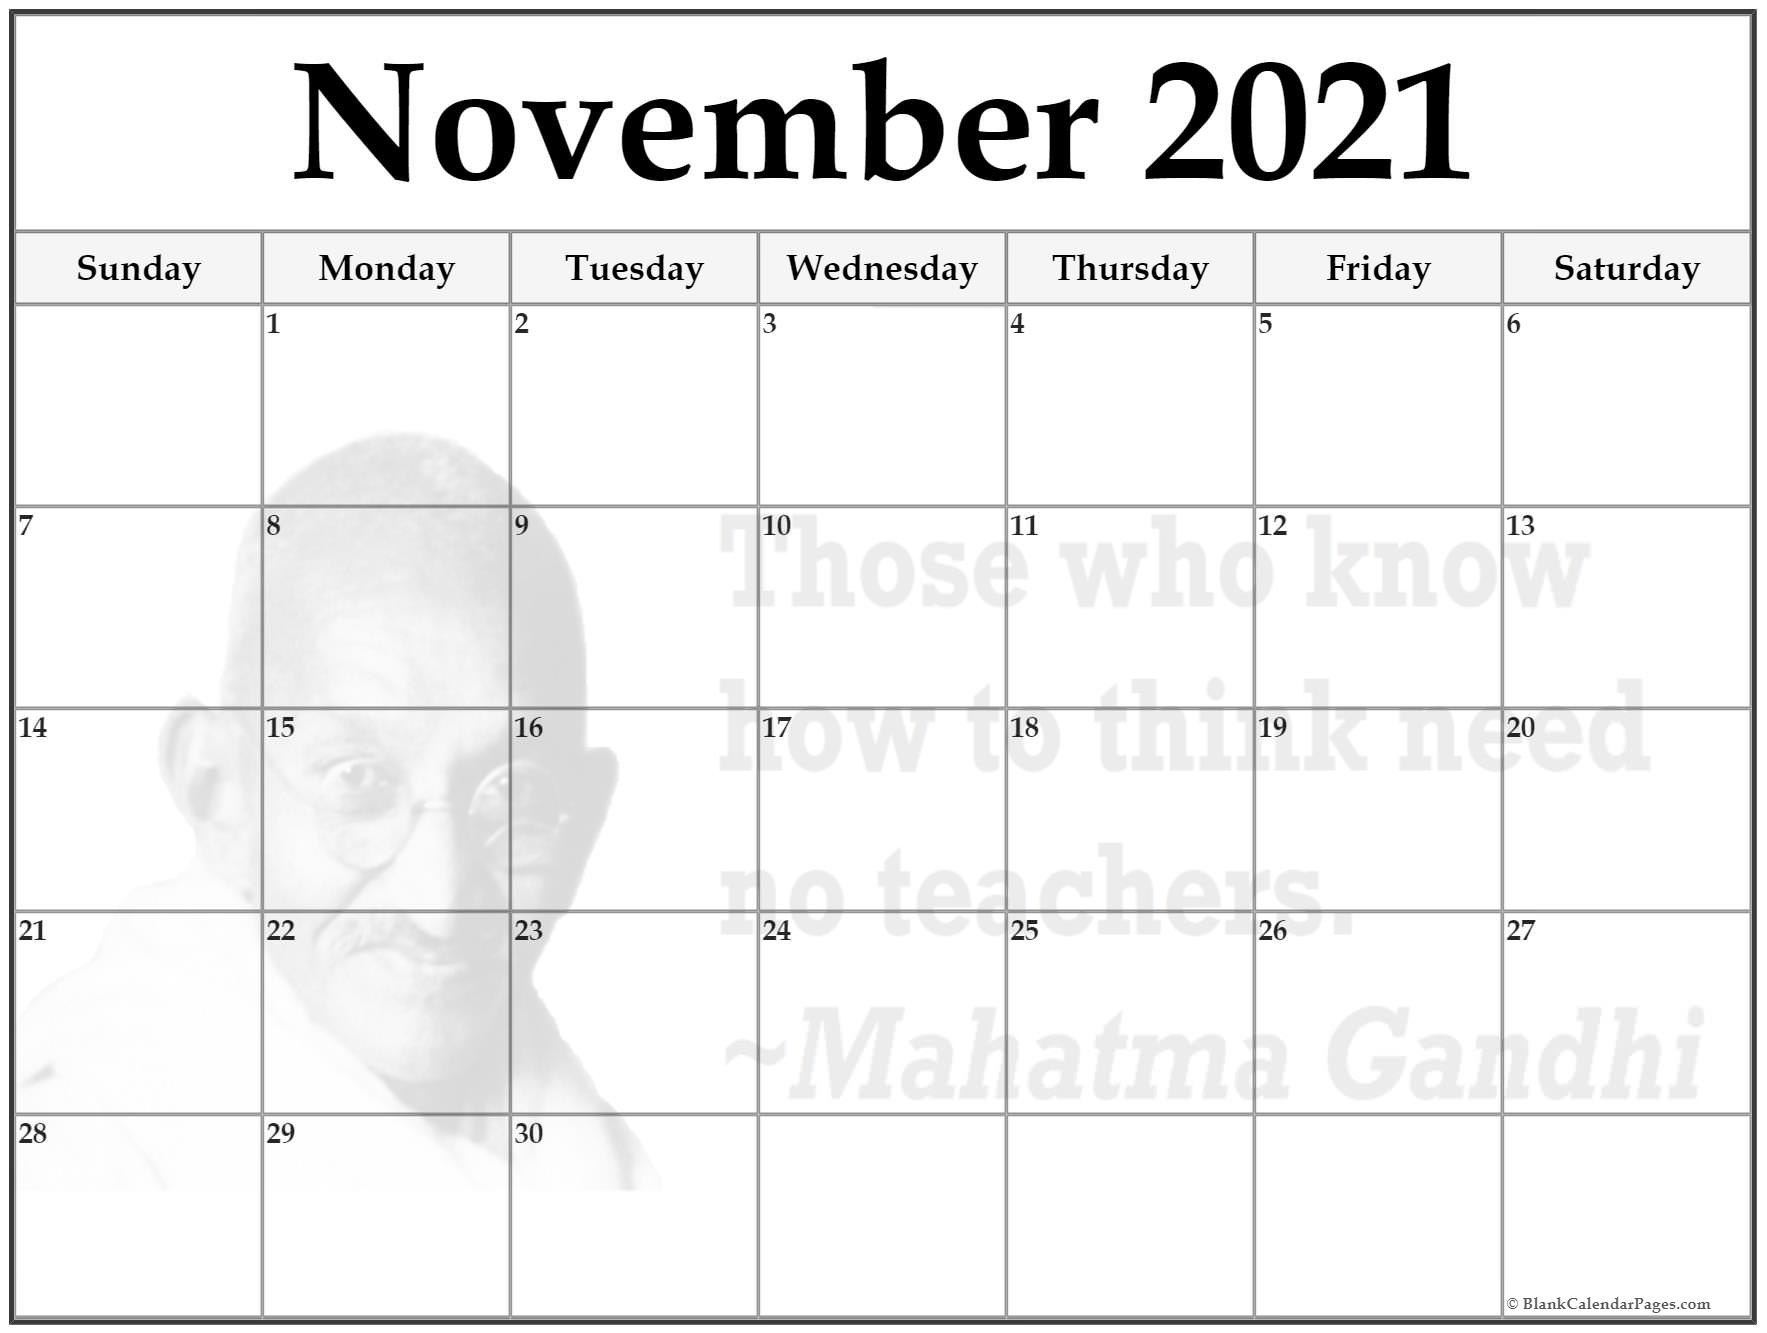 November 2018 monthly calendar template. Those who know how to think need no teachers. ~Mahatma Gandhi